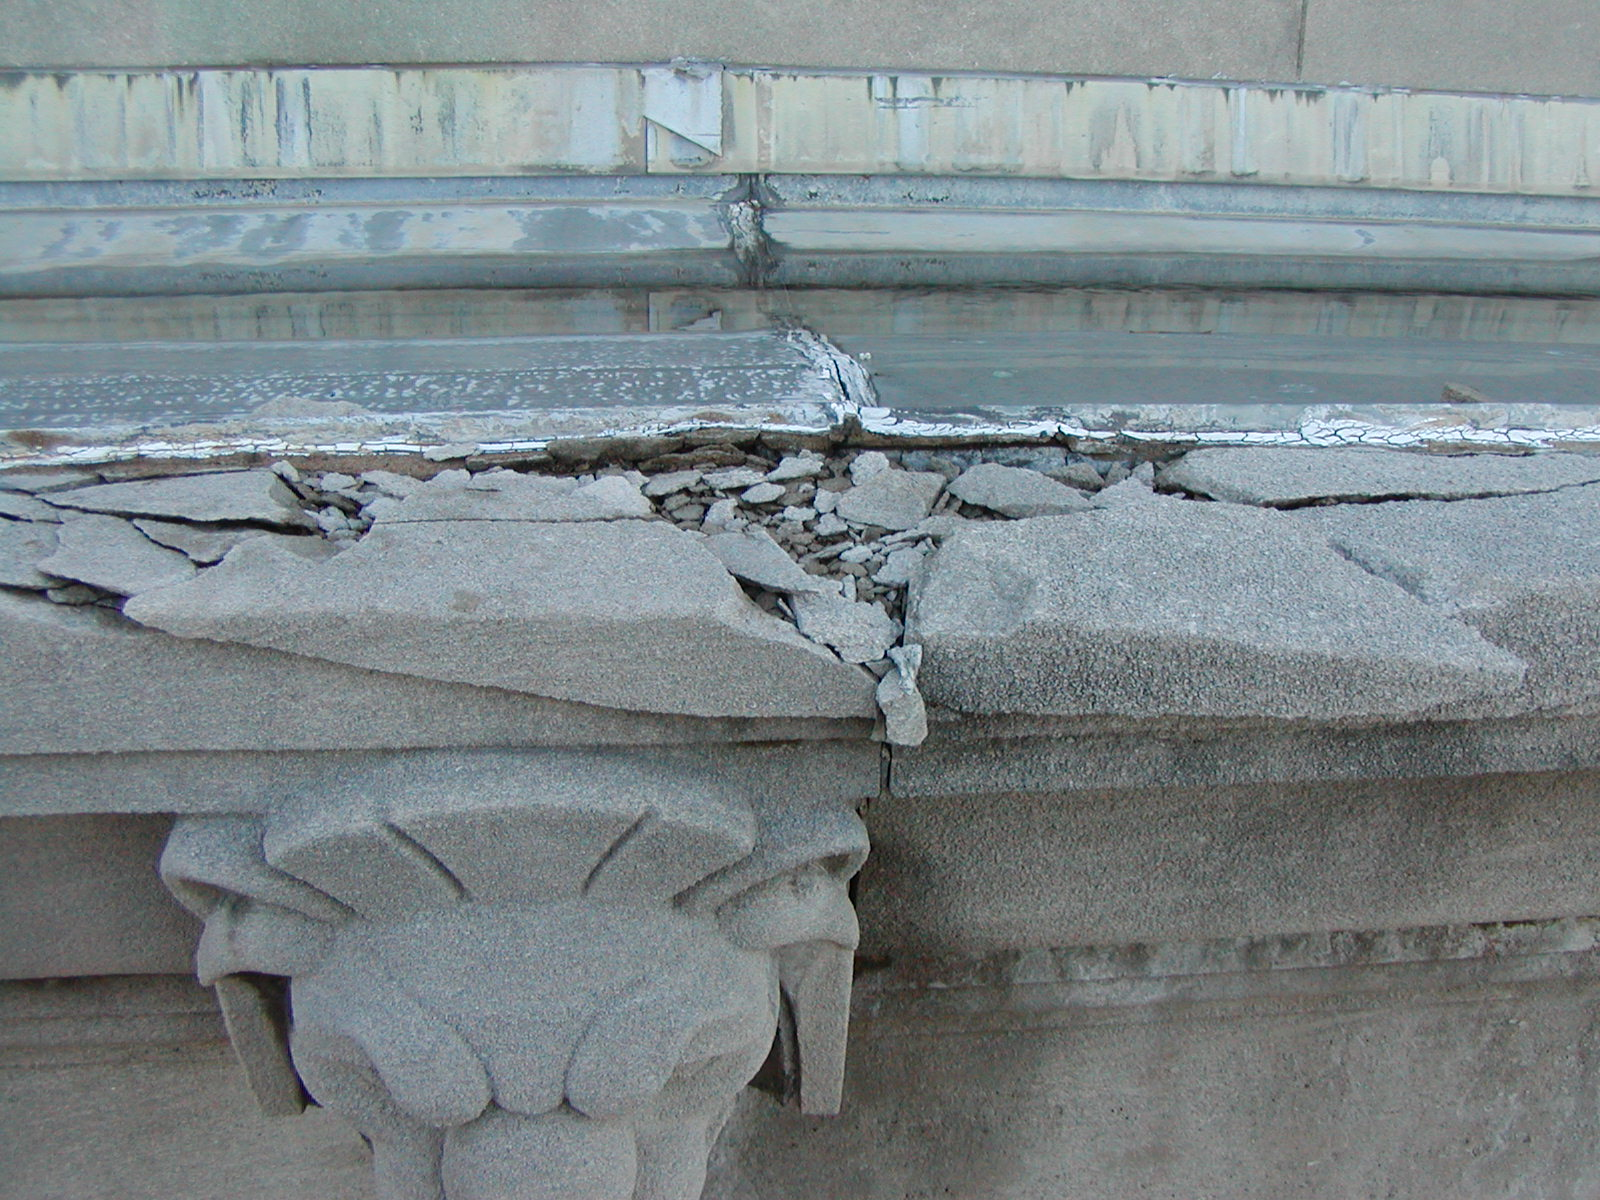 Damaged cornice stones on the Herbert Hoover Department of Commerce Building, December 2003